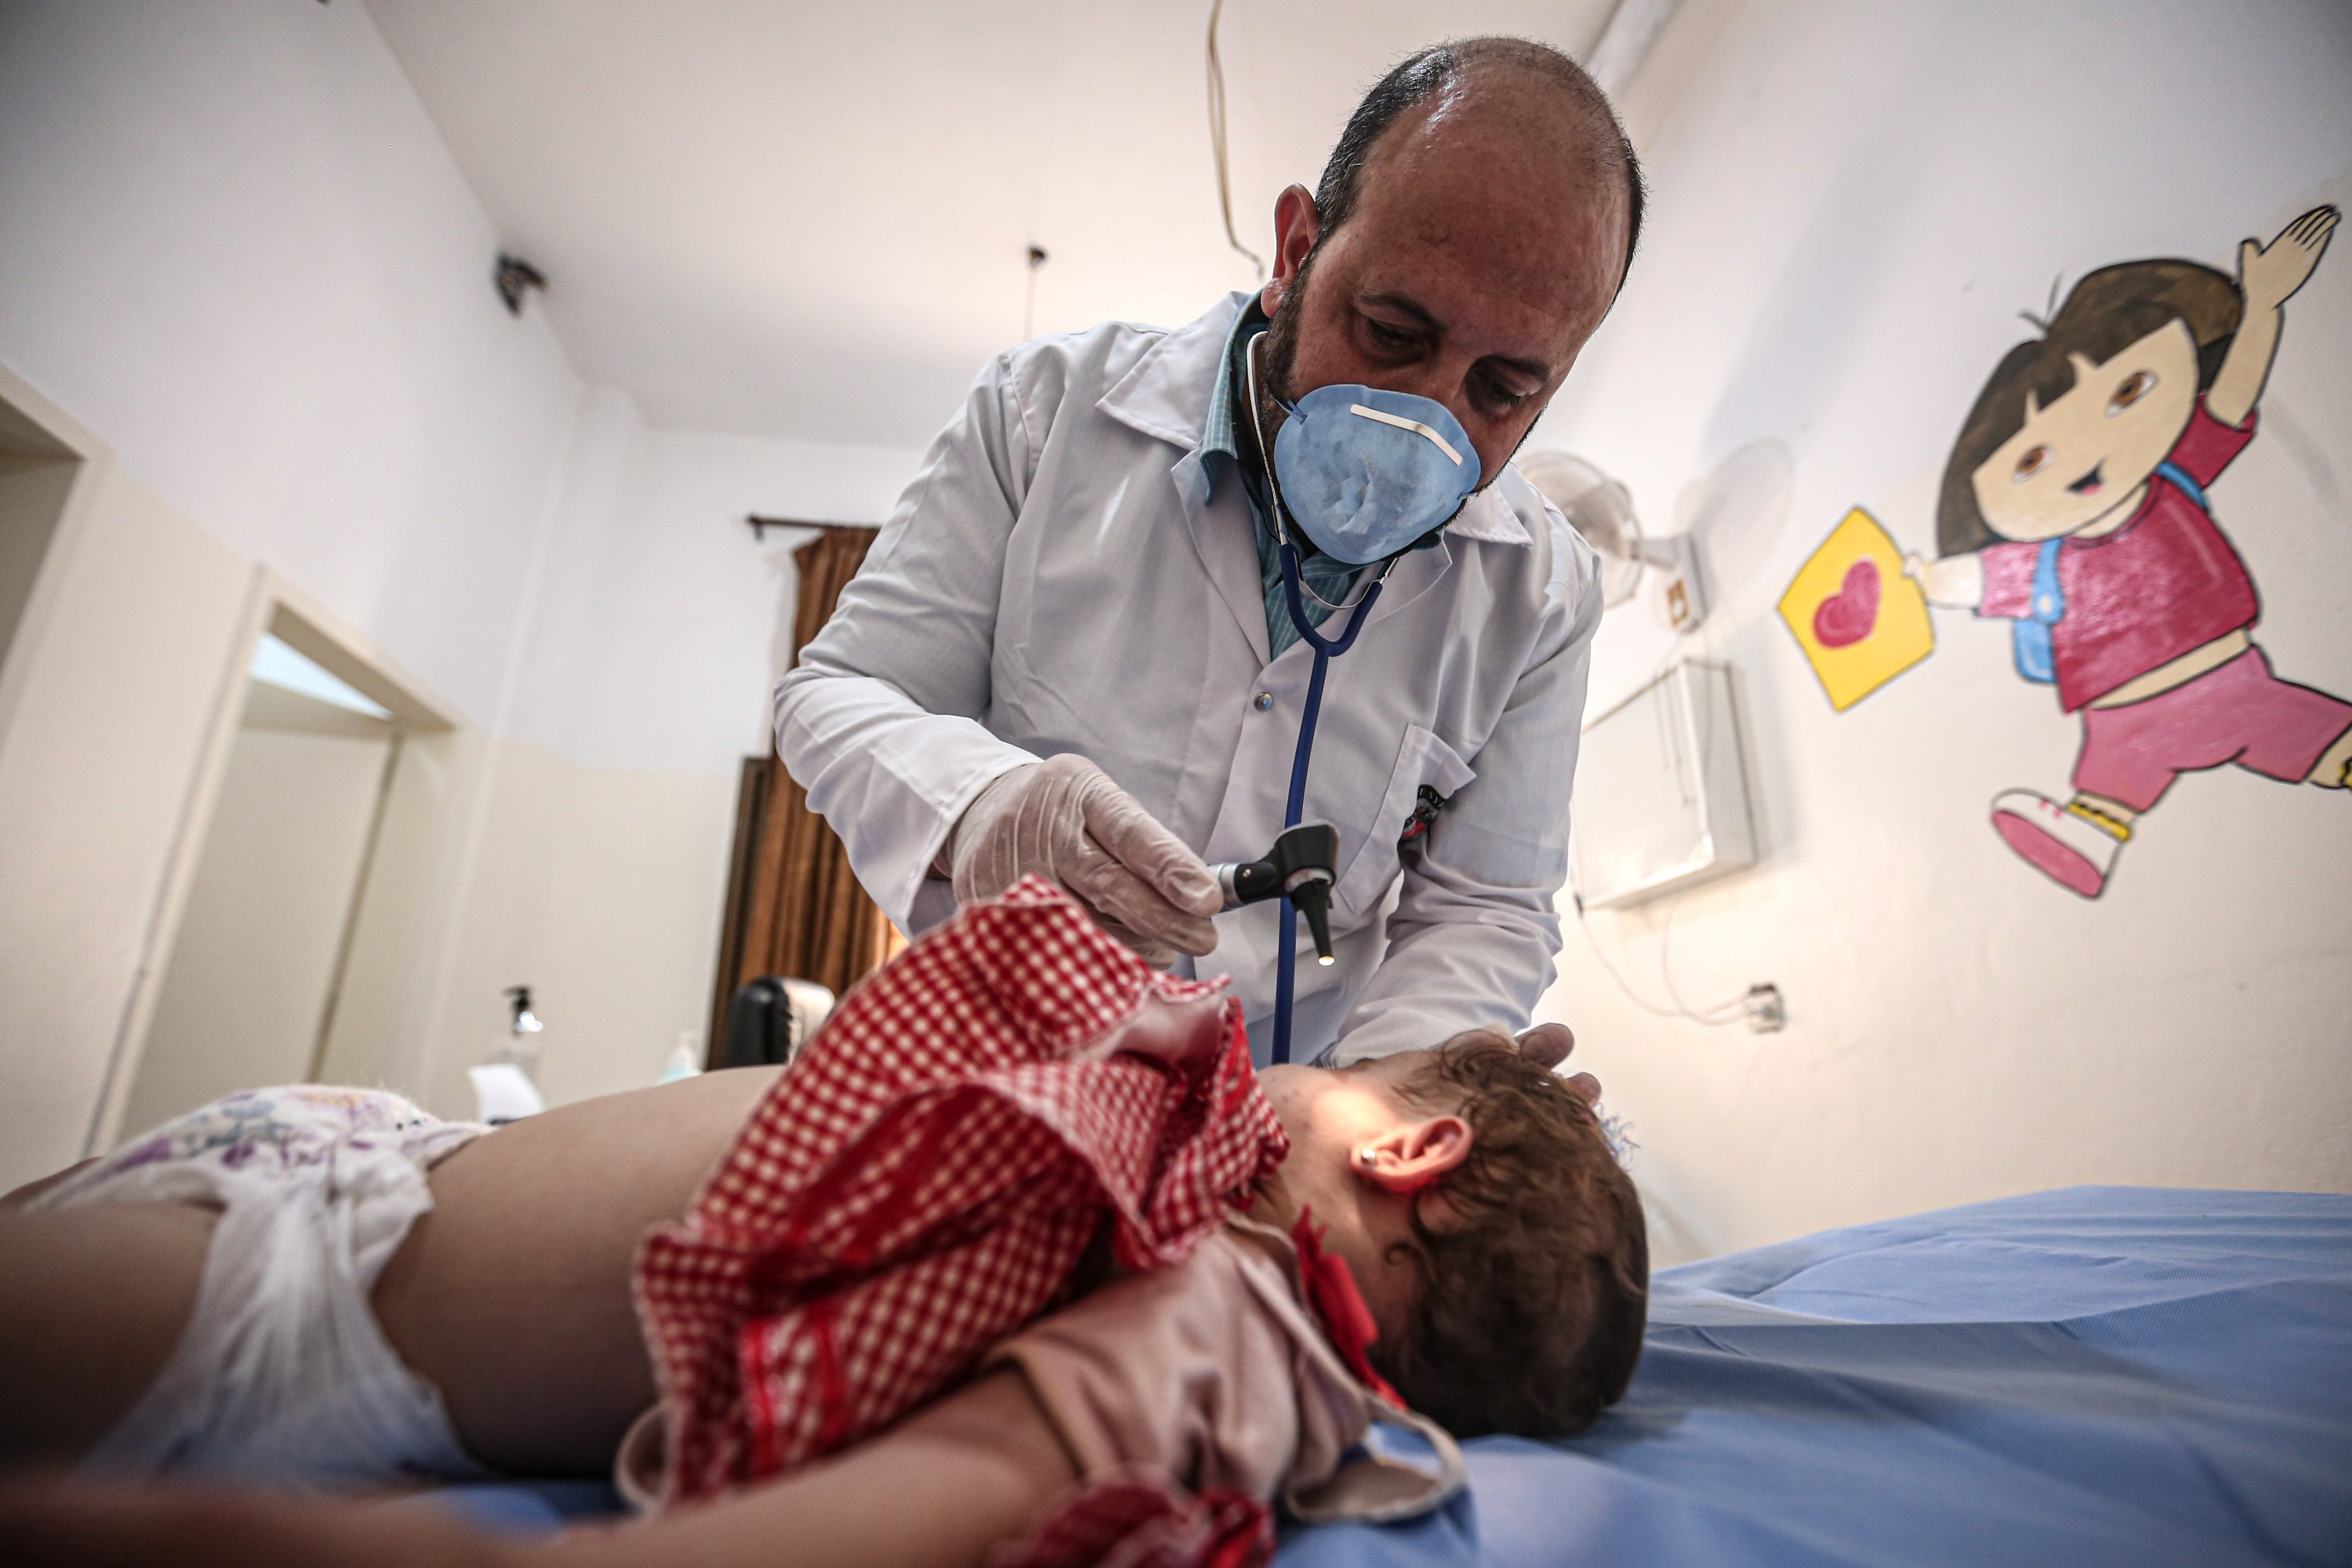 Mamoun Sahar, a doctor working at the Ibni Sina Child Hospital, takes care of a child patient hospitalized with heat-related symptoms, Idlib, Sept.3, 2020. (AA)